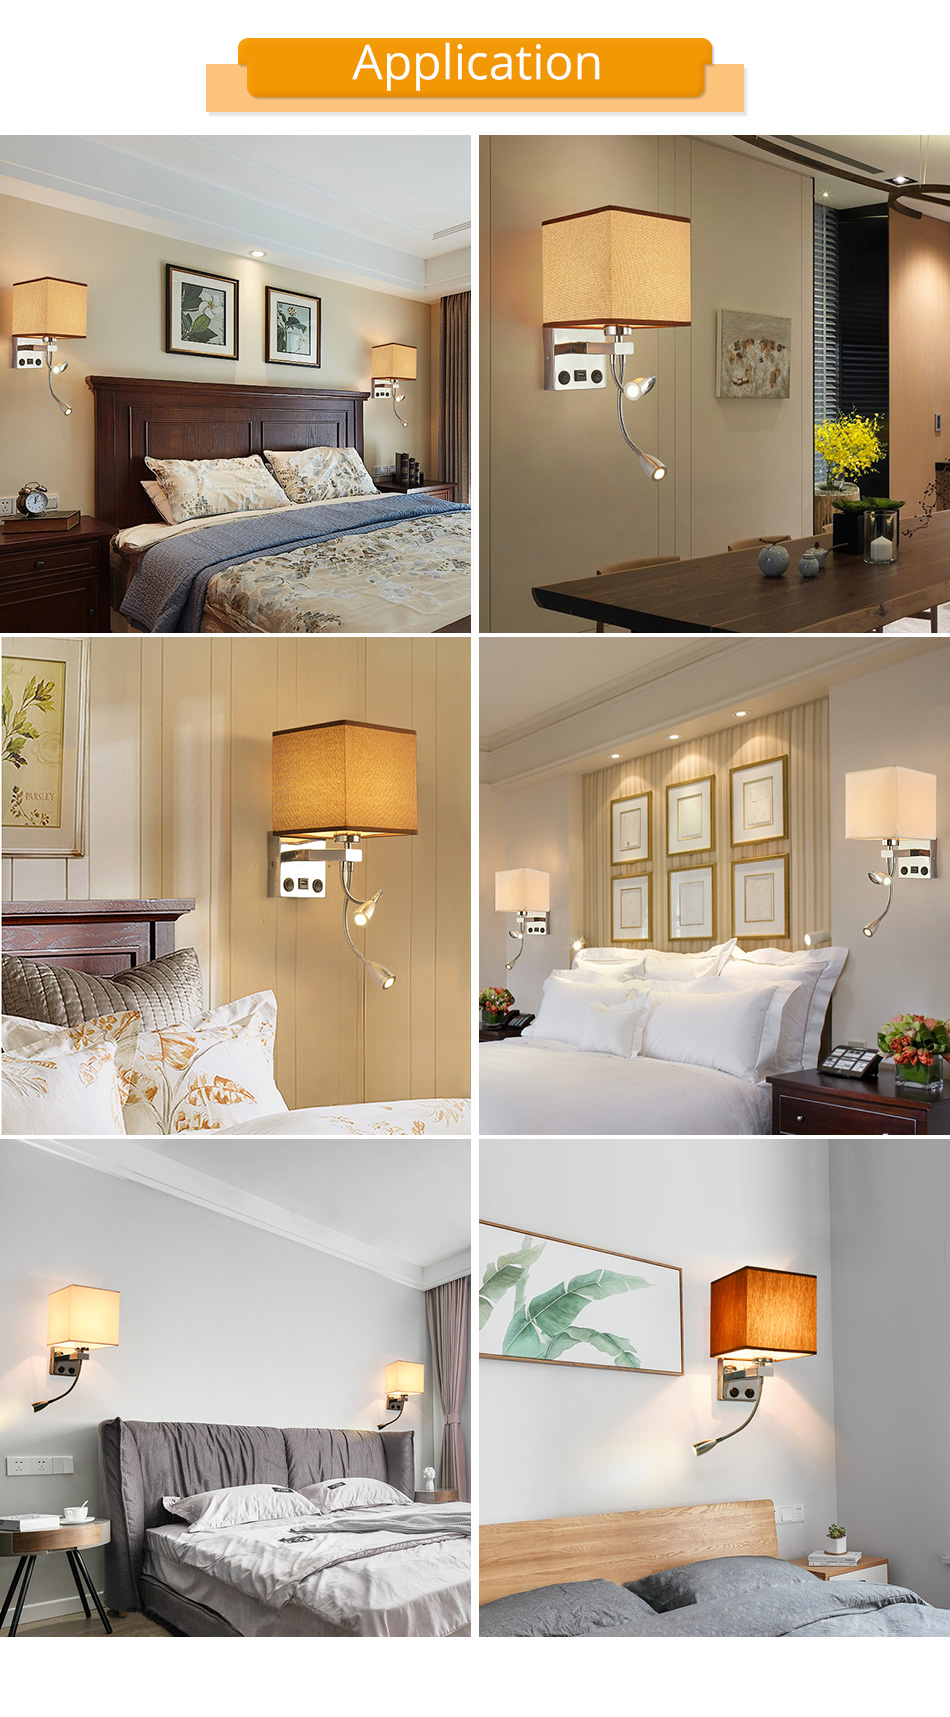 Modern Indoor LED Wall Lamp Bedside Bedroom Applique Sconce With Switch USB E27 Bulb Interior Headboard Home Hotel Wall Lights (11)